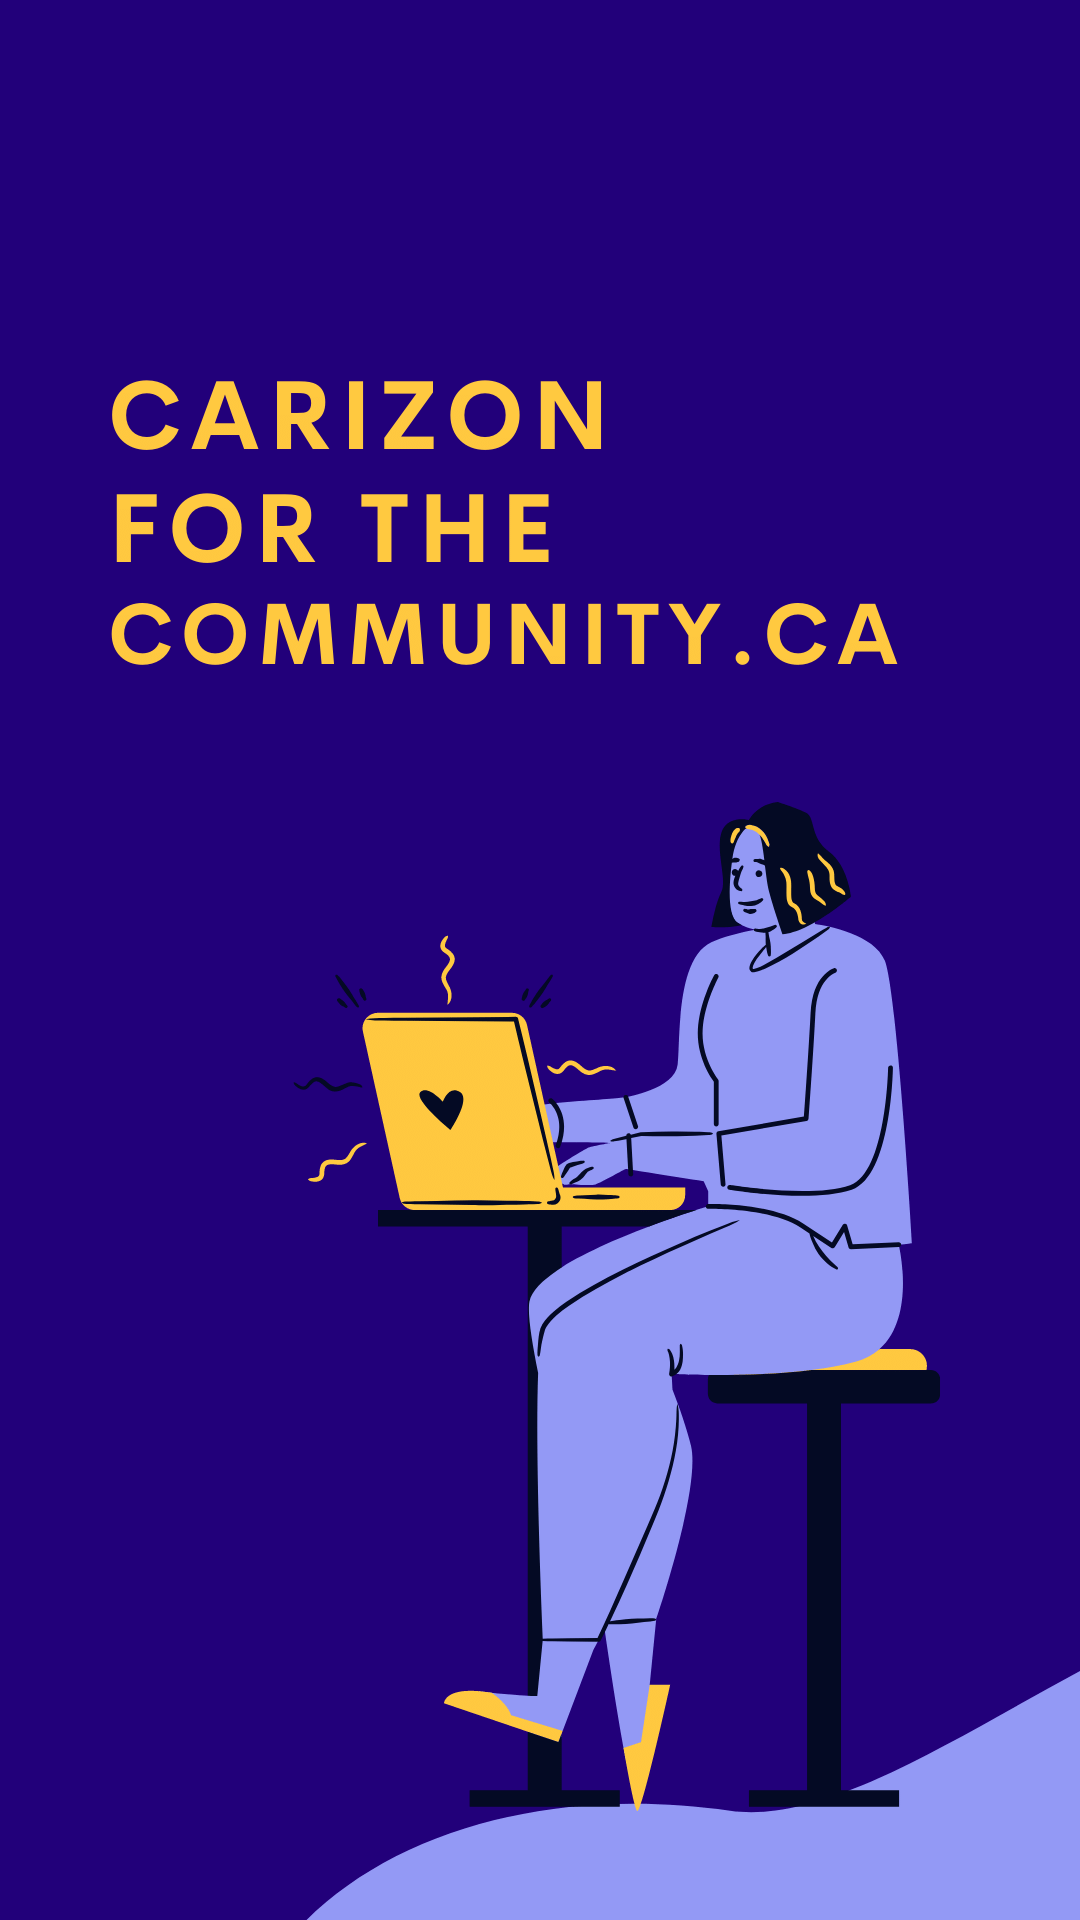 Carizon Launches Carizonforthecommunity.ca